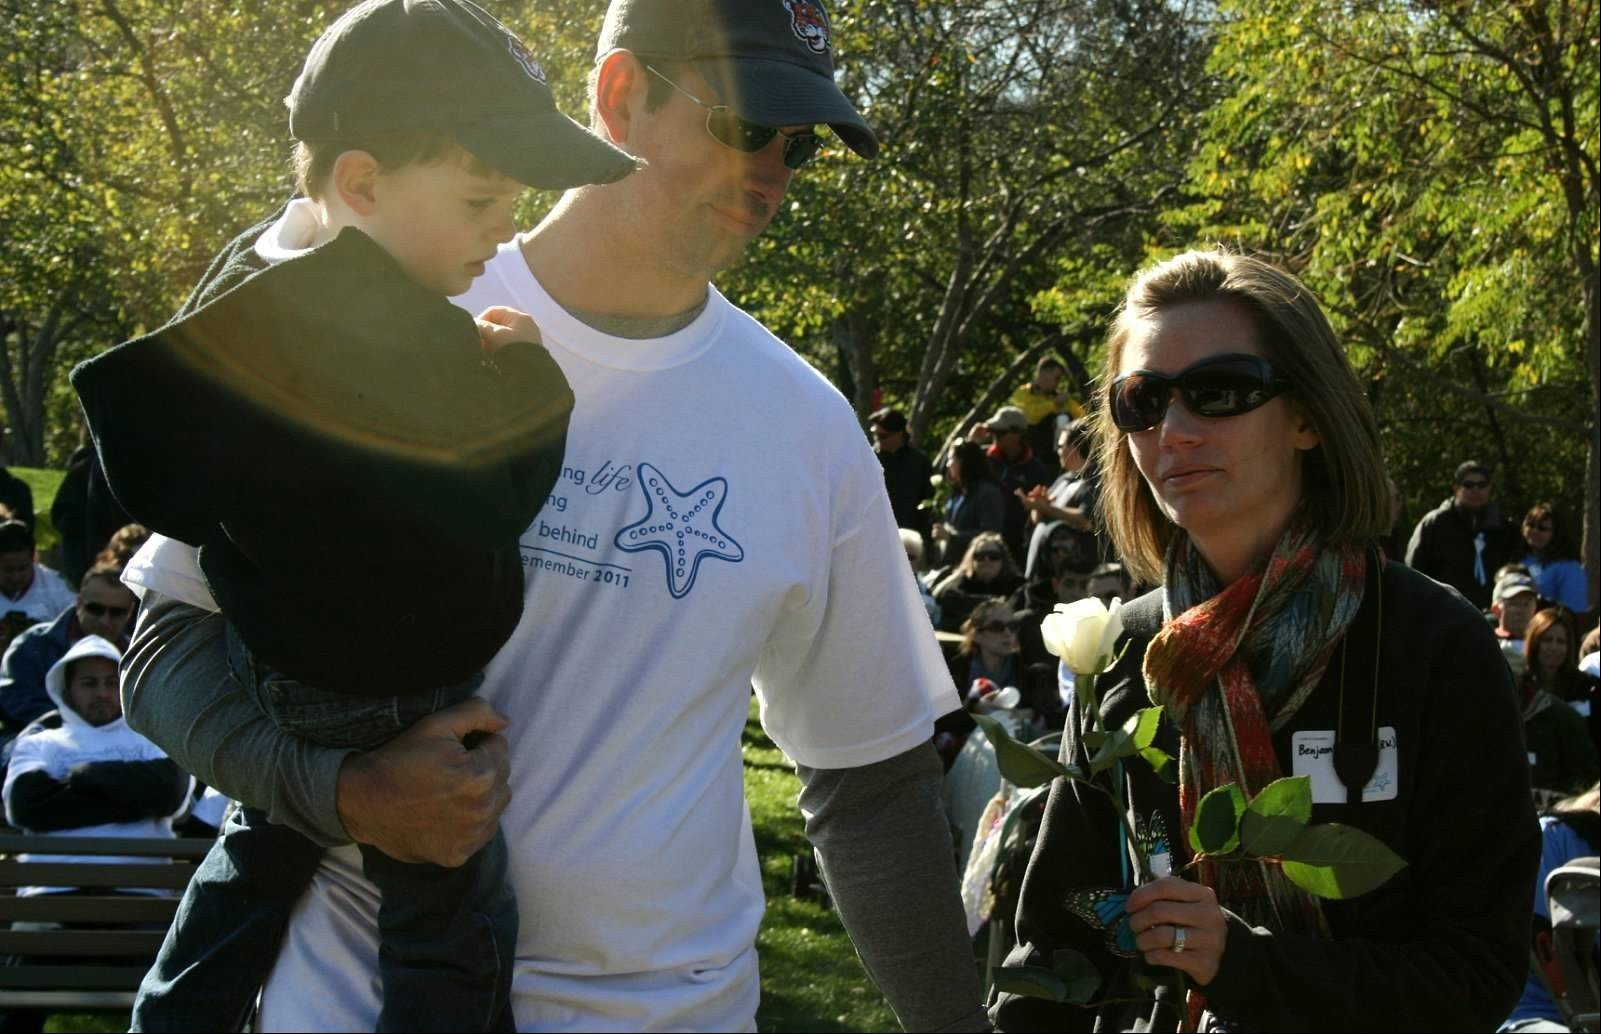 Families who have experienced miscarriage, stillbirth or early infant death will hear their babies' name read and receive a white rose during a memorial ceremony at A Walk to Remember.